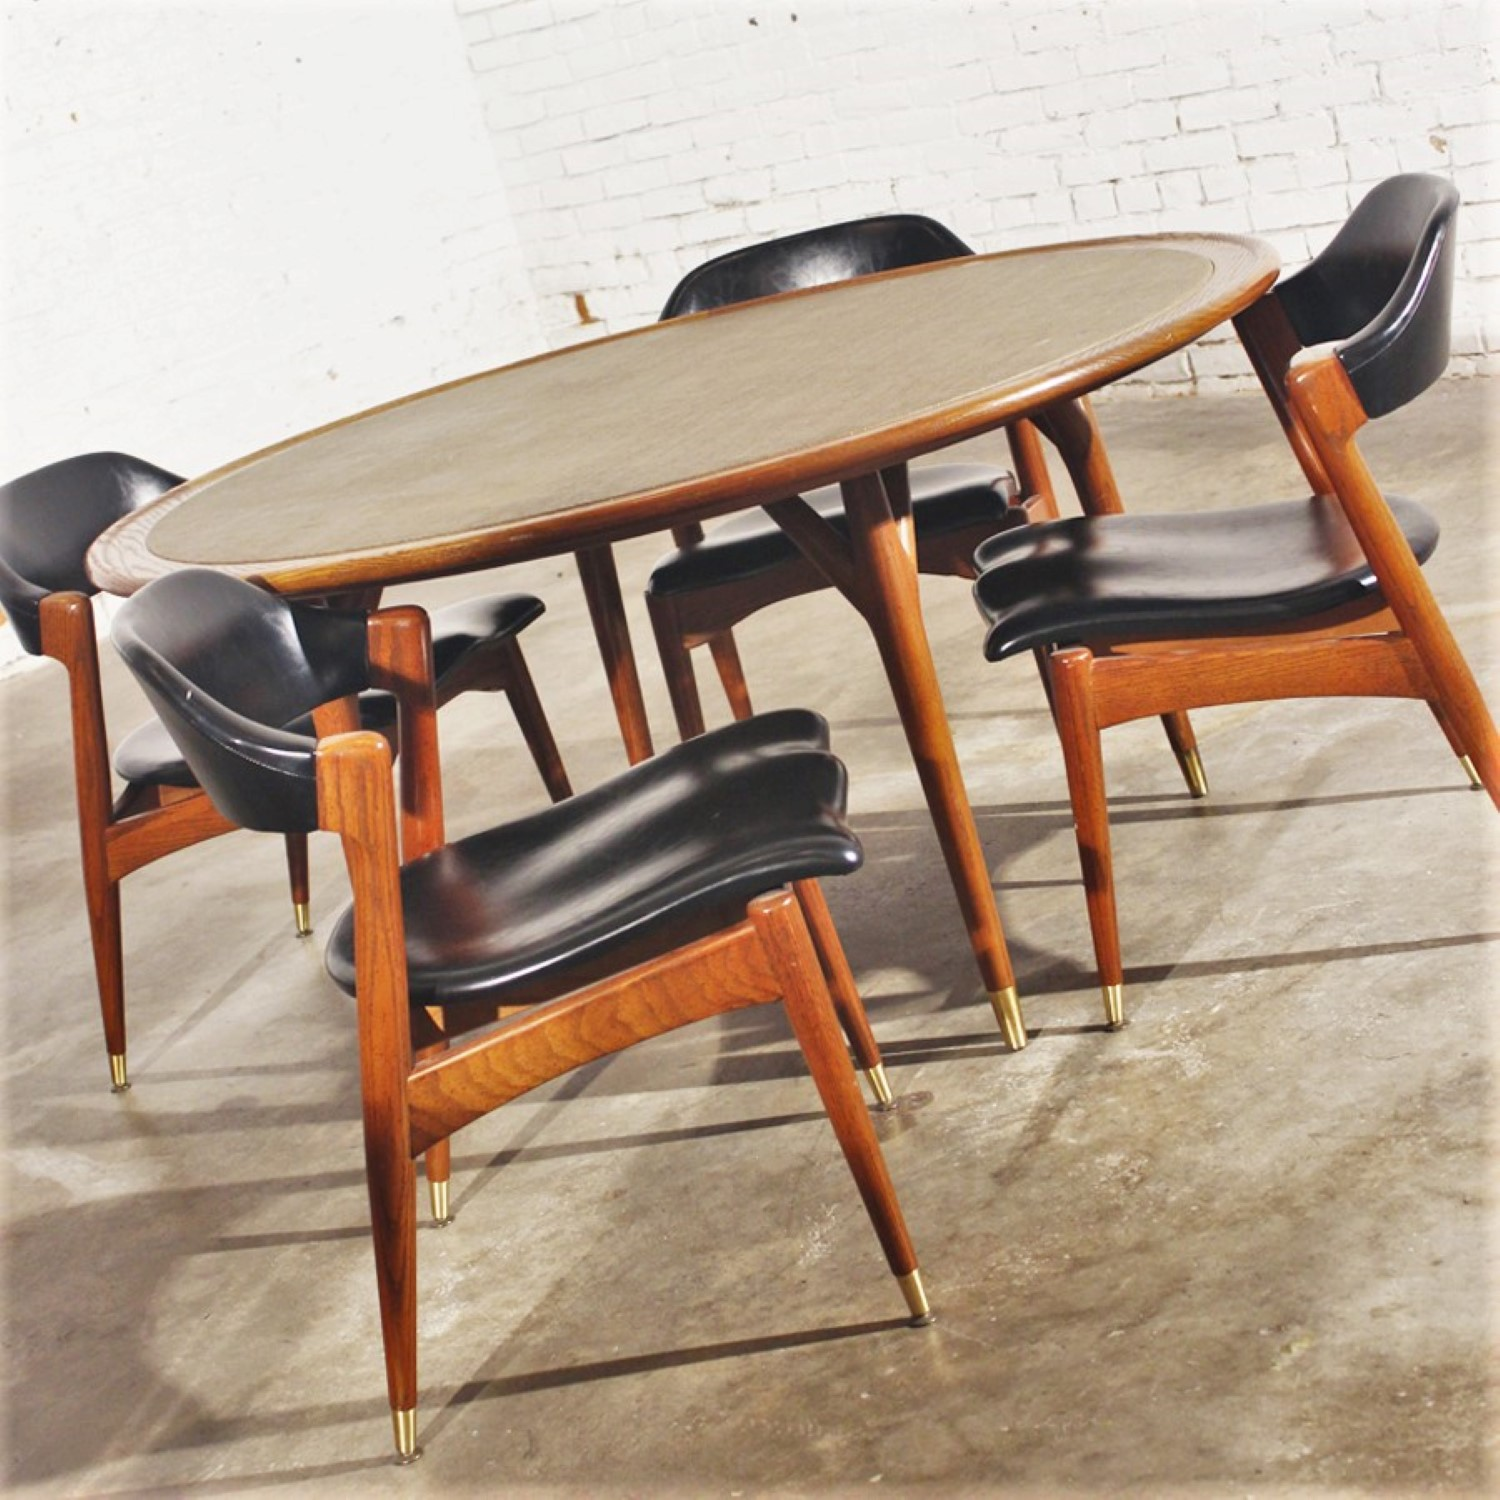 Vintage Mid Century Modern Americana Casual Game Table Chairs By Jack Van Der Molen For Jamestown Lounge Company Warehouse 414